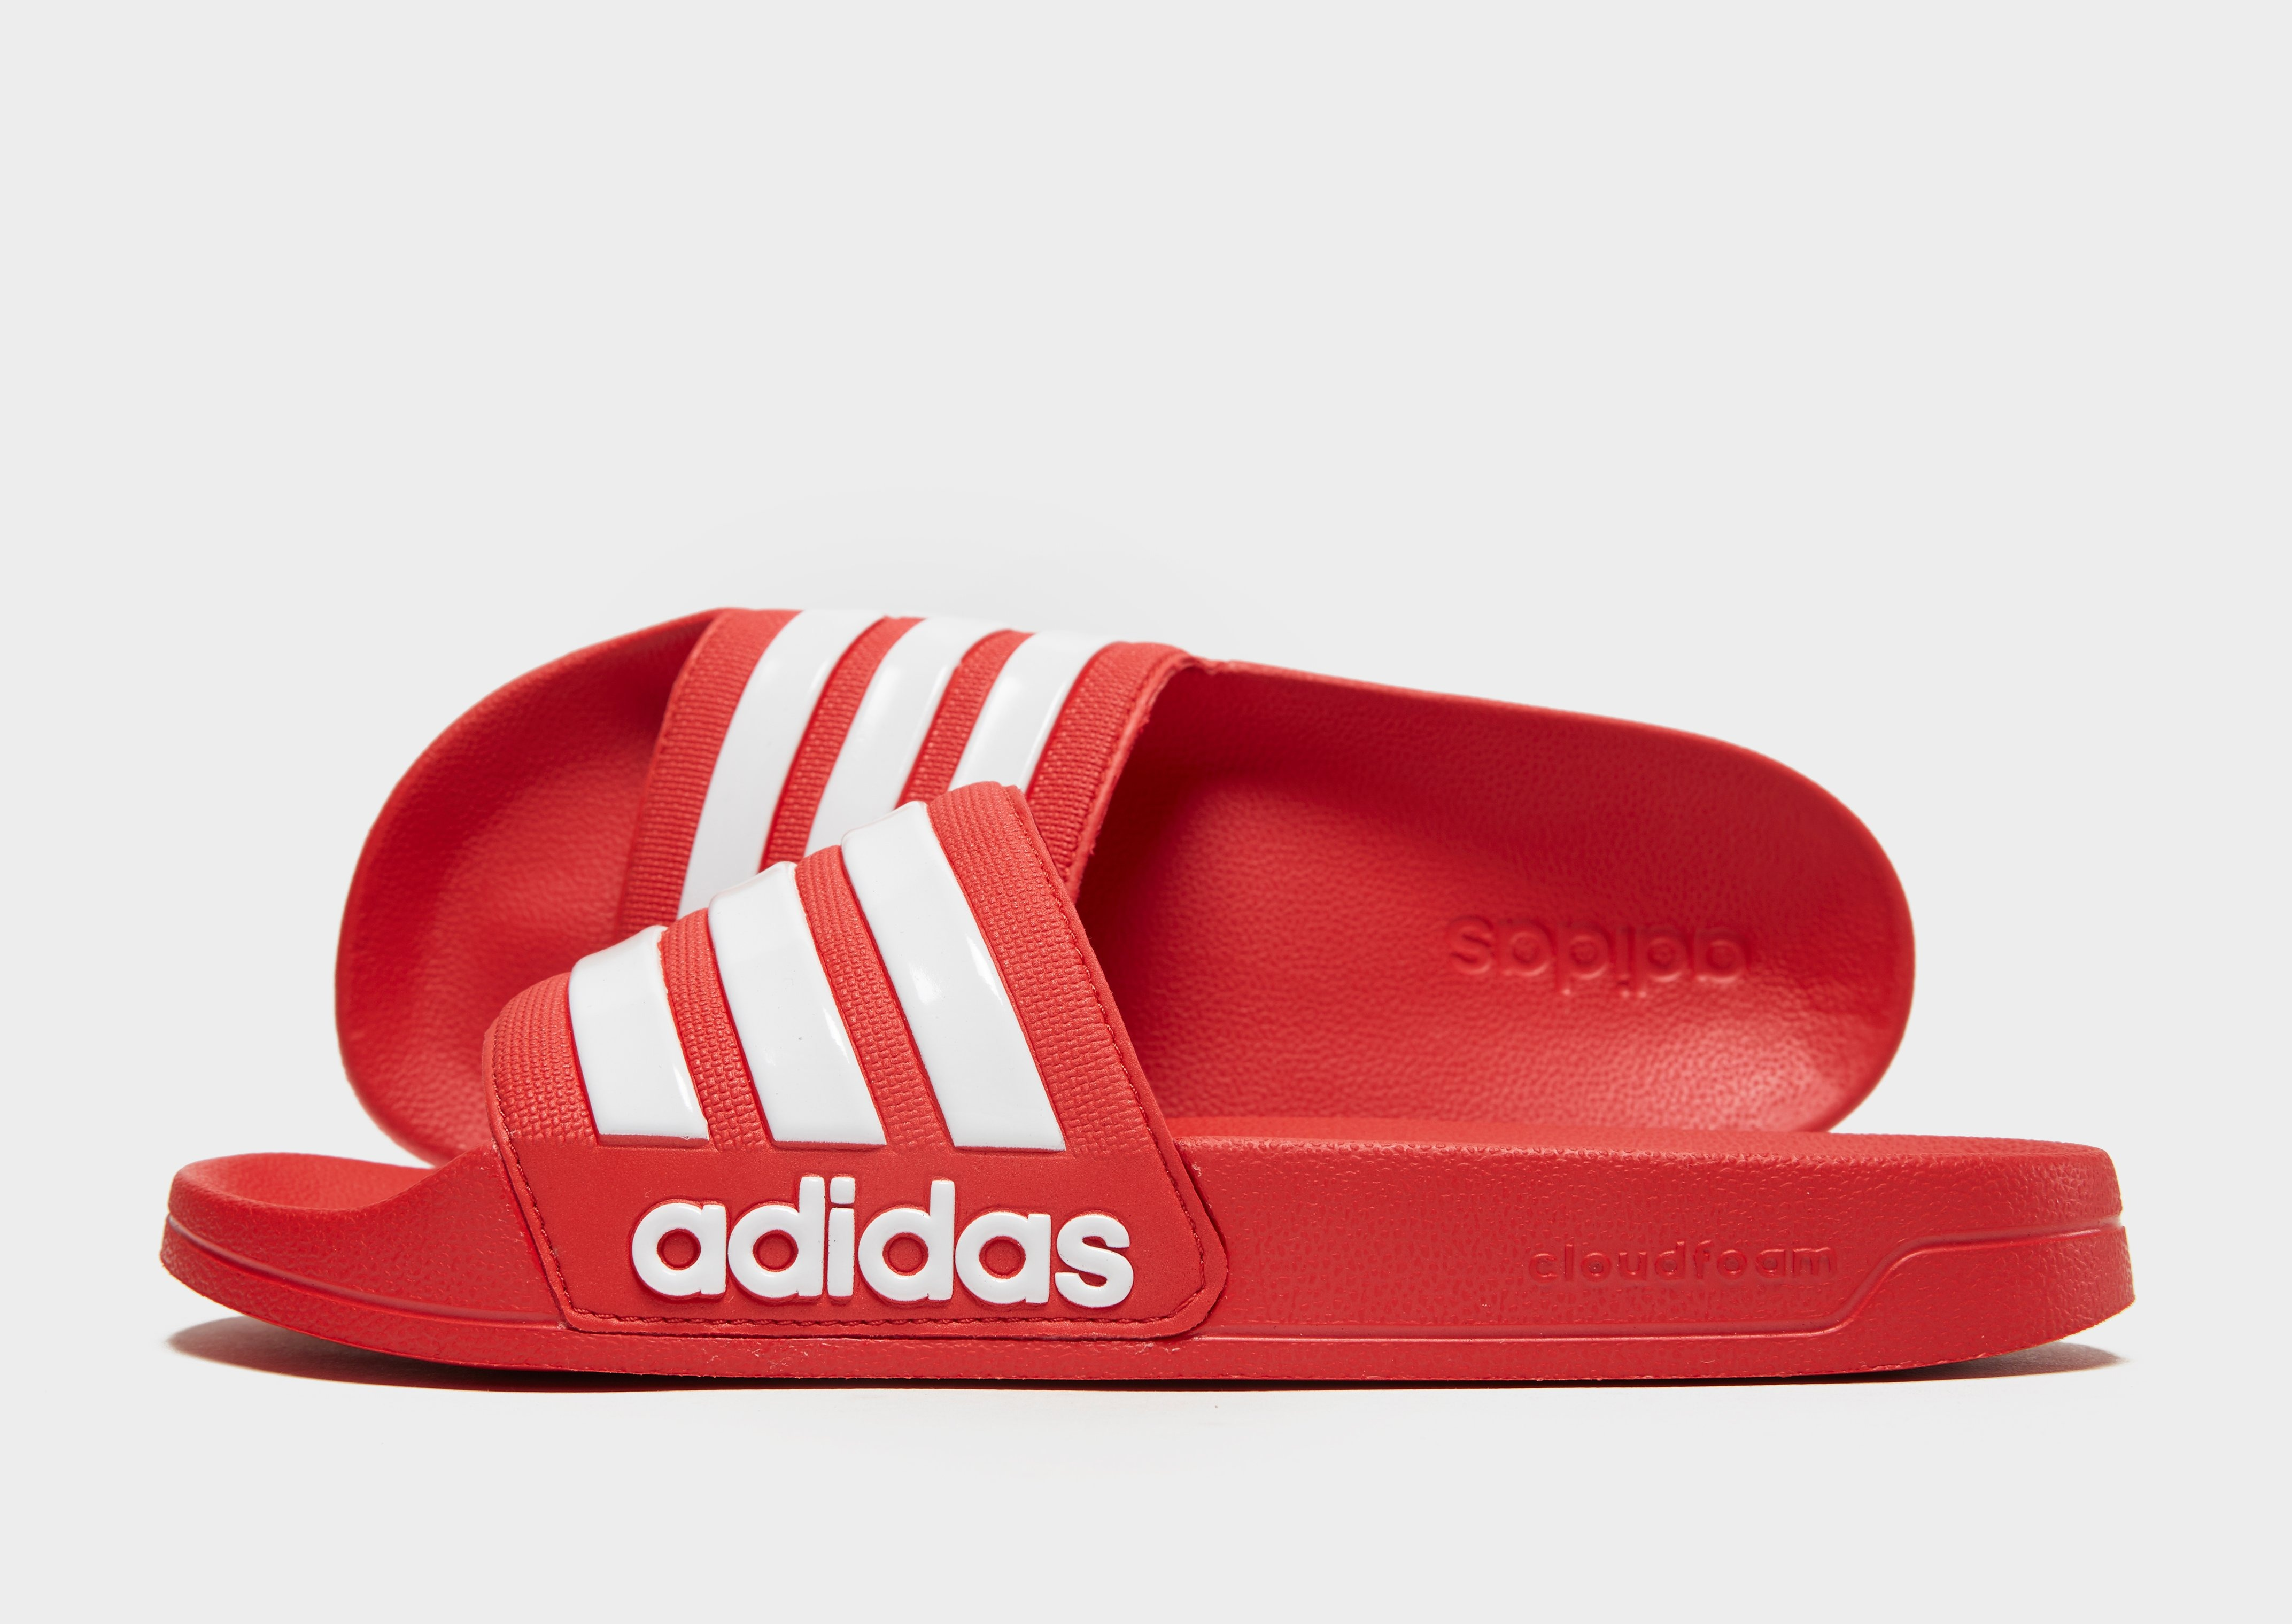 yo Acechar Puerto  Buy Red adidas Adilette Shower Red/wht